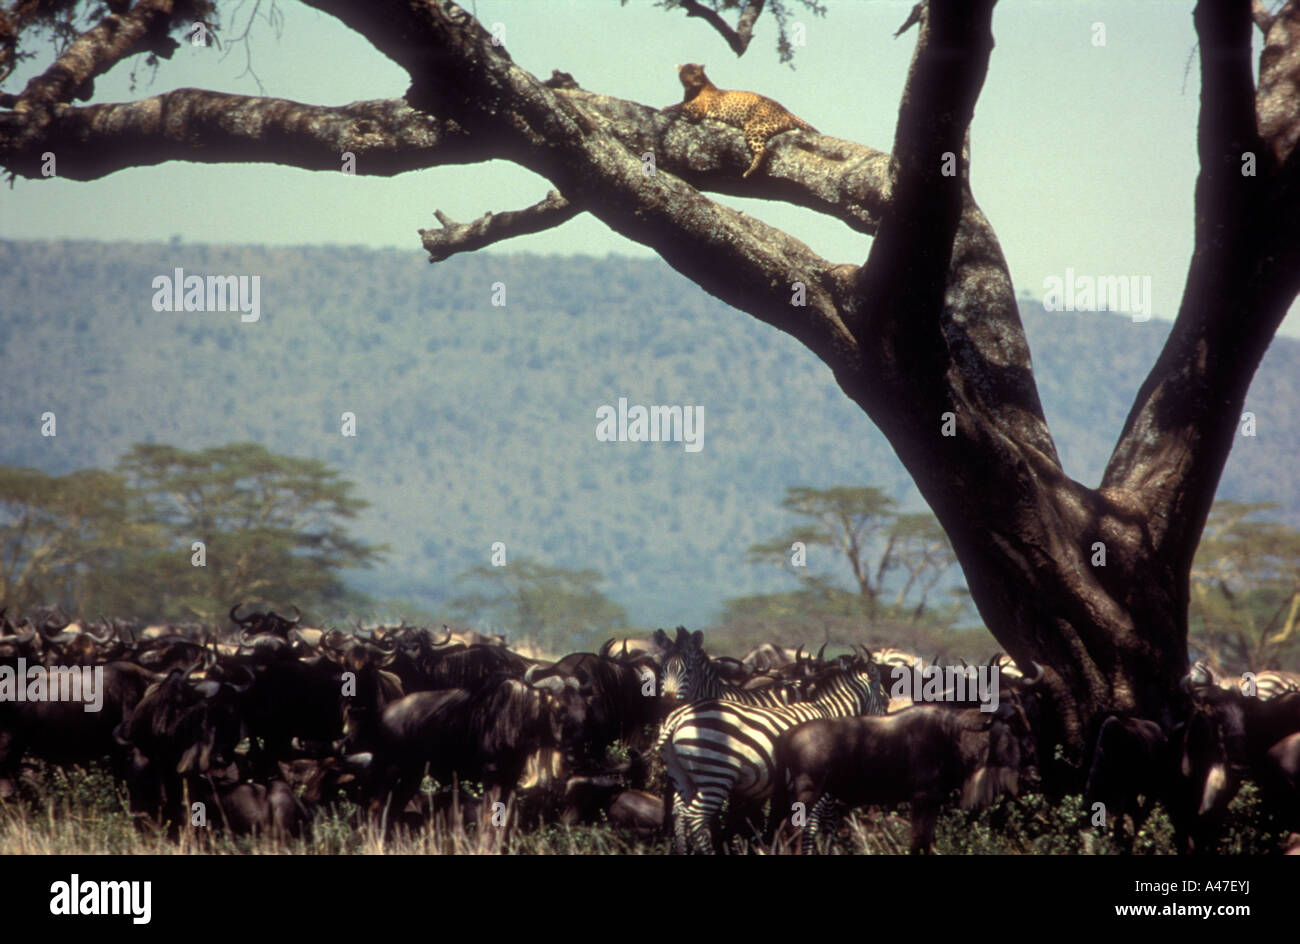 Wildebeest and Common Zebra under tree with leopard on branch above Serengeti National Park Tanzania - Stock Image